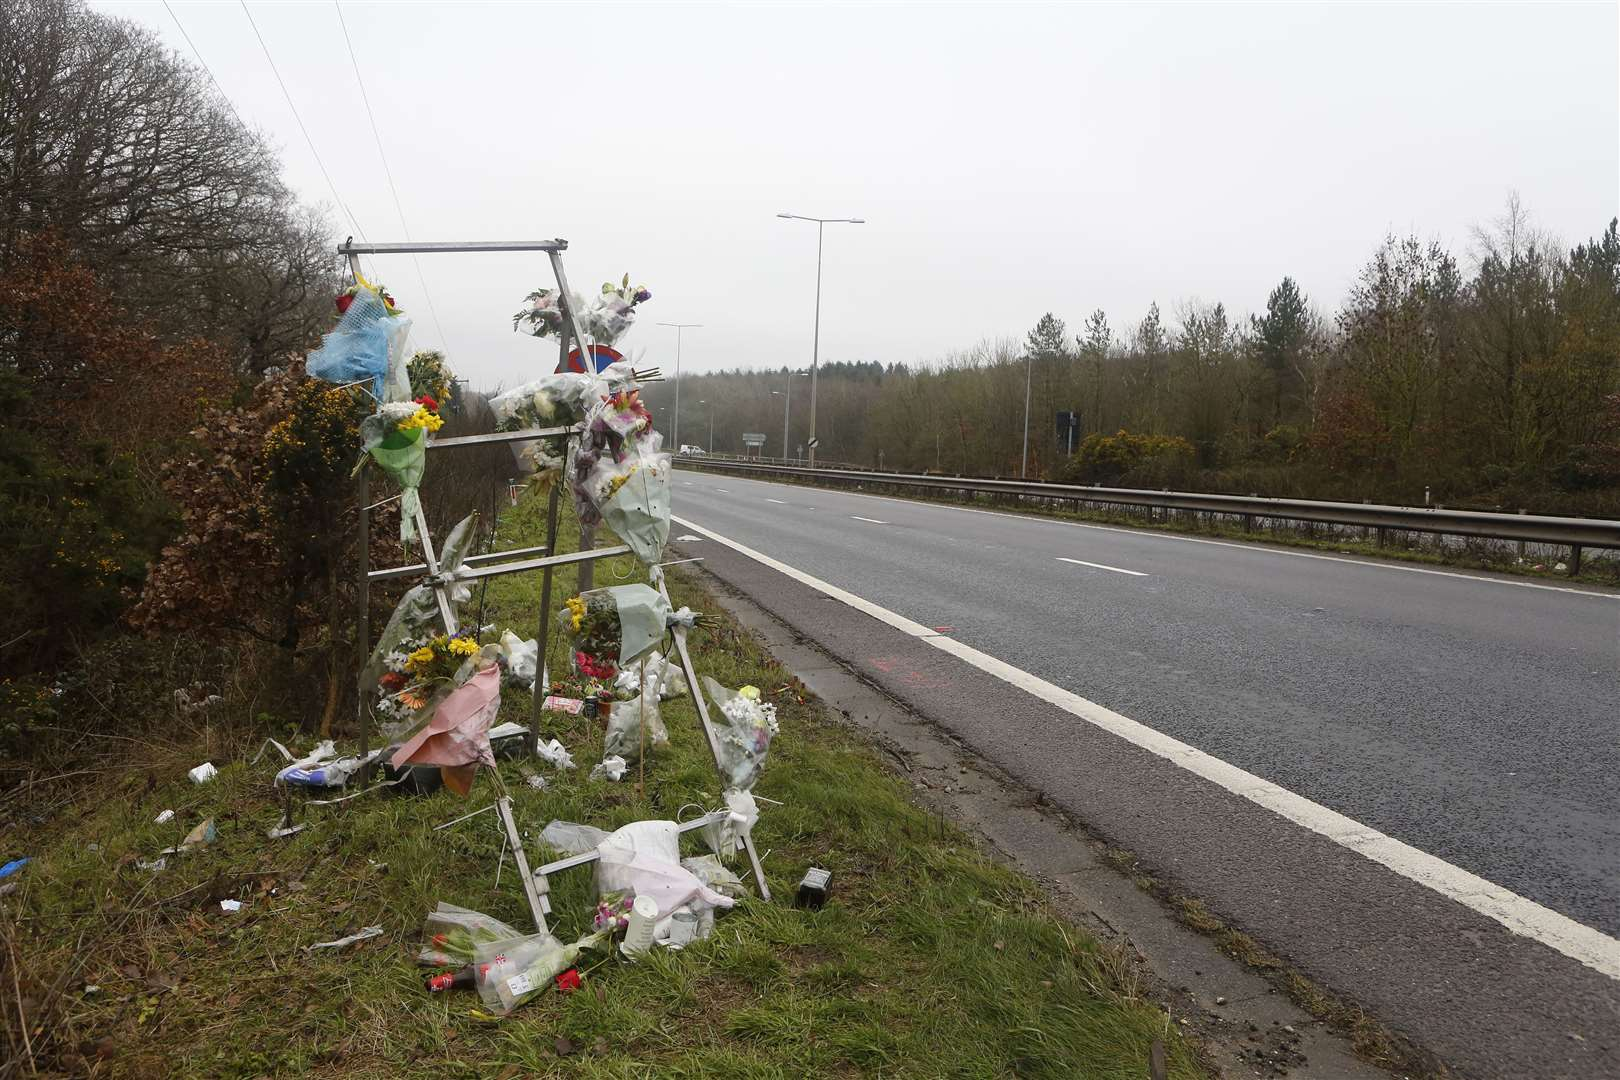 Flowers and tributes left at the scene of the fatal crash